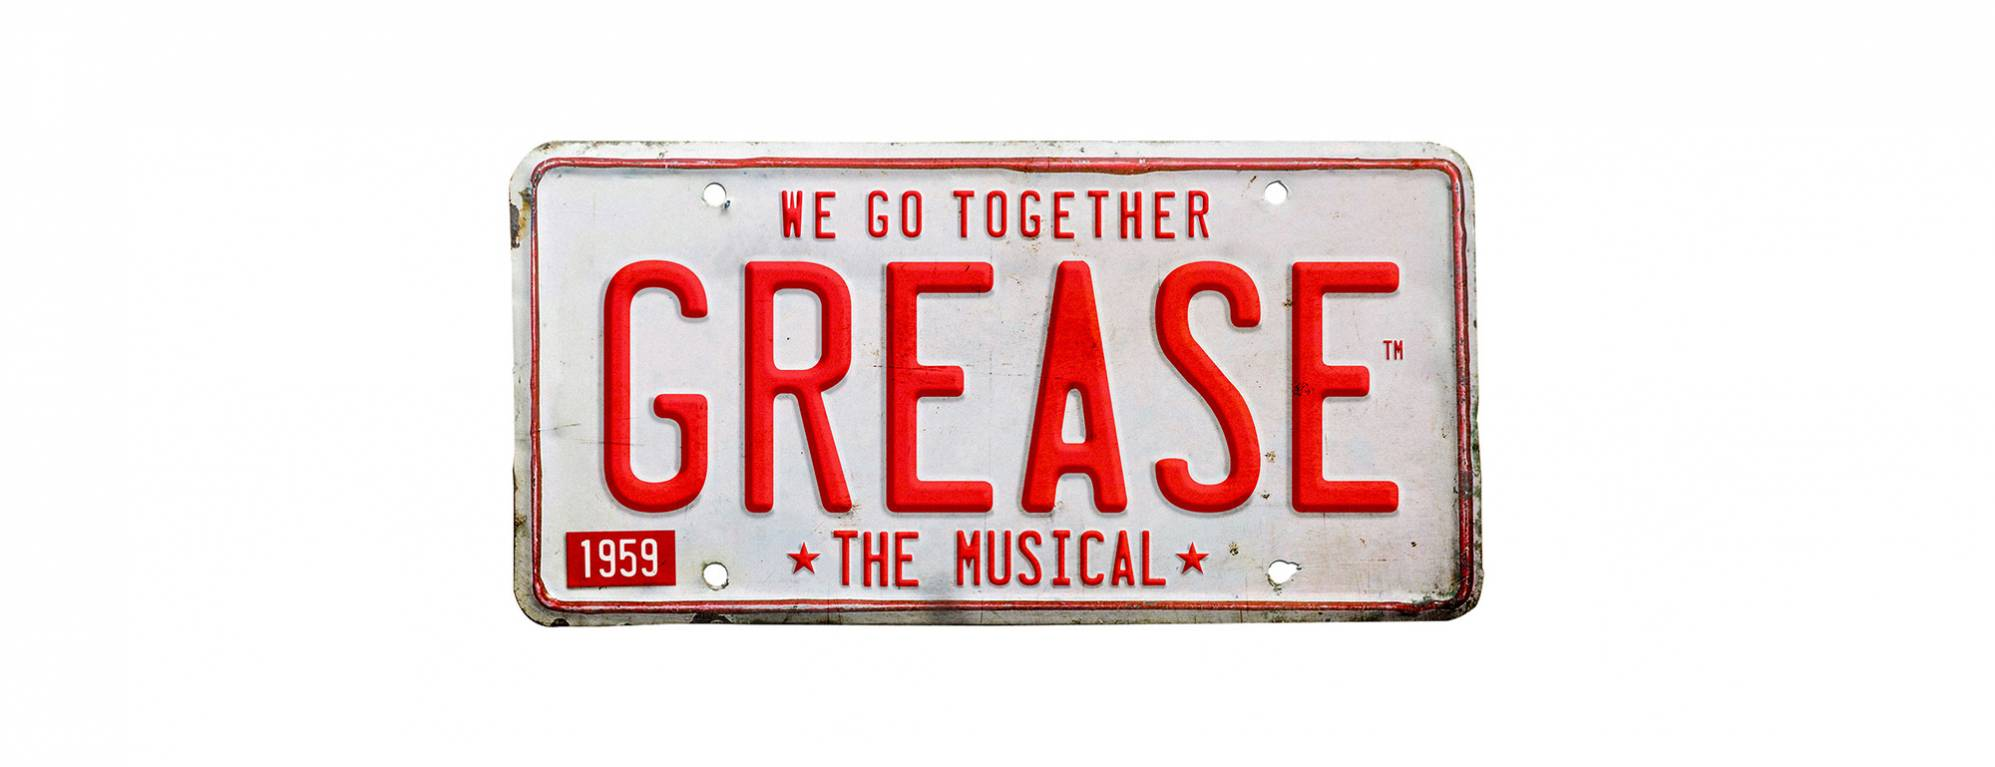 Grease Artwork